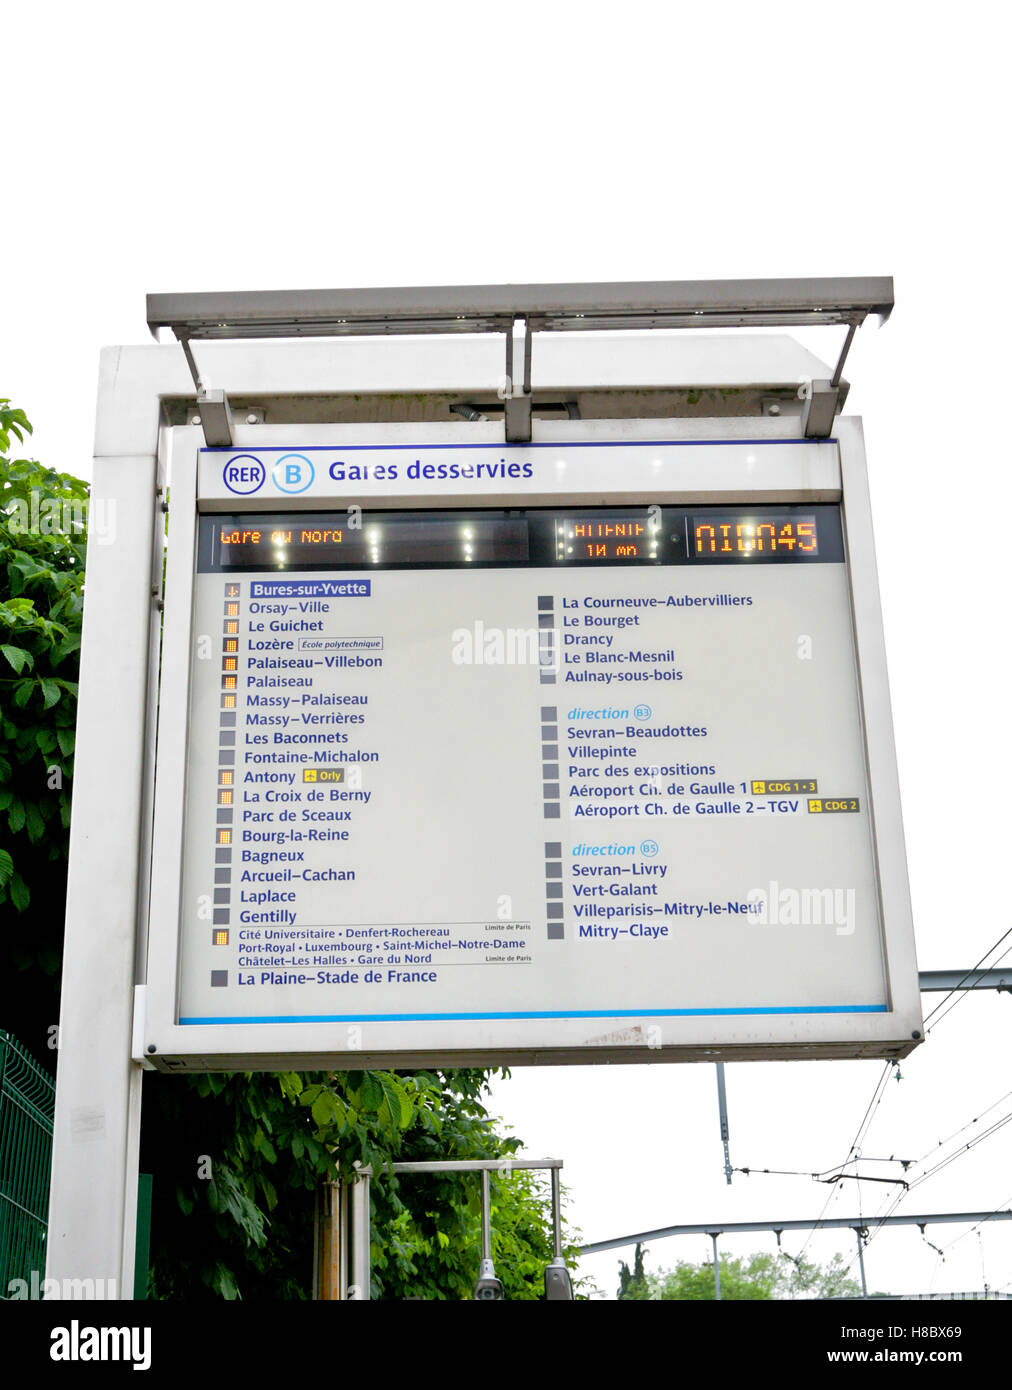 RER B, train/metro station panel sign,with the names of stations where the train will stop. France - Stock Image